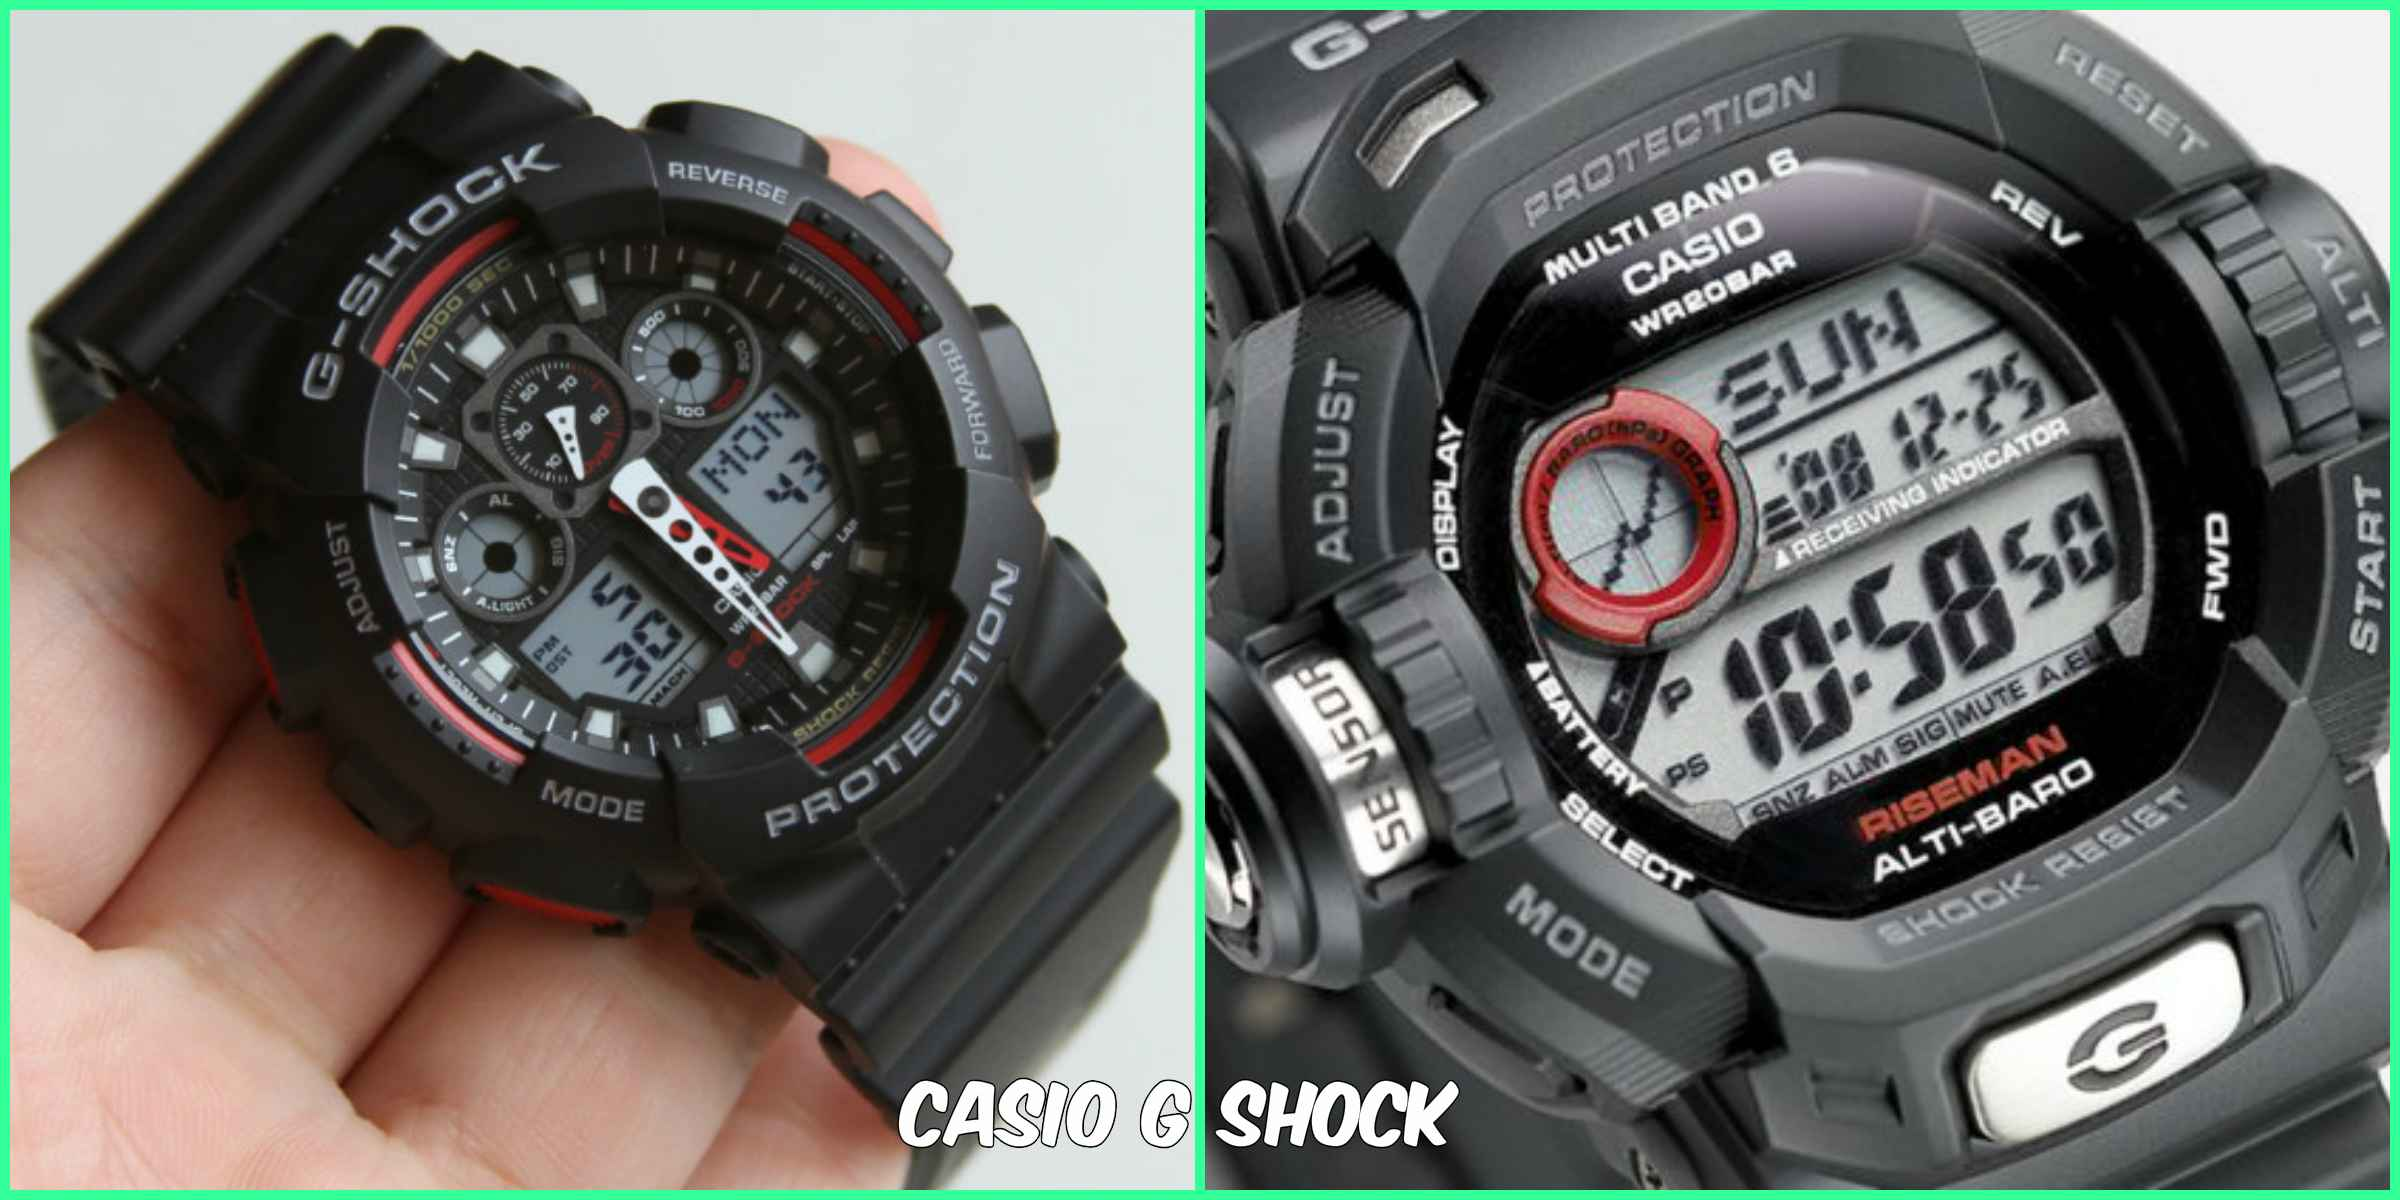 Casio G Shock Watch Ga 100 1a1d Fashion Sports Watch C9 - Relgios